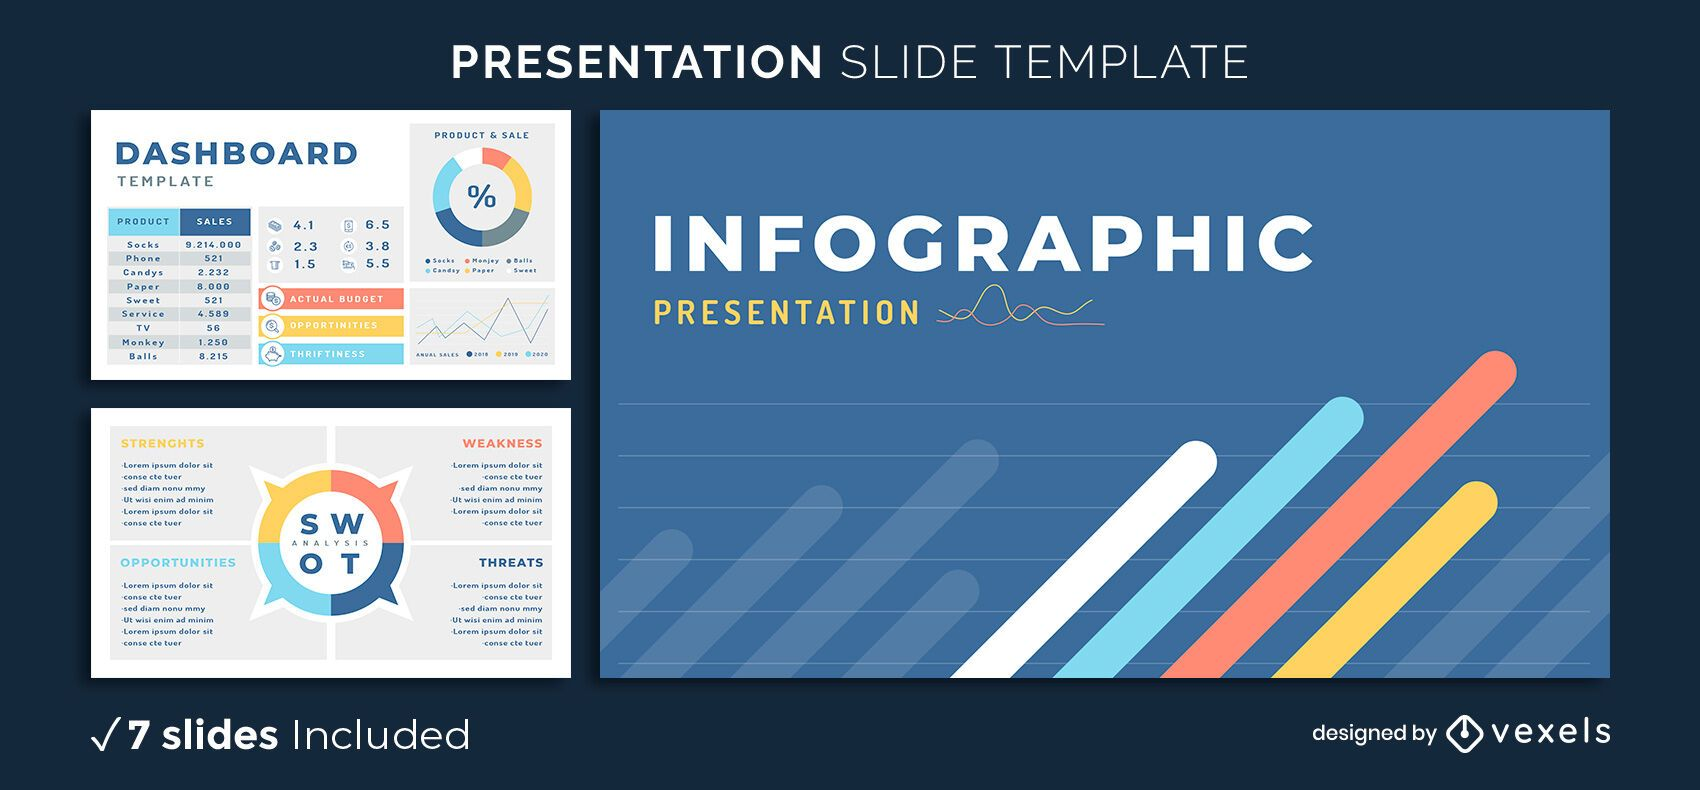 Infographic Elements Presentation Template